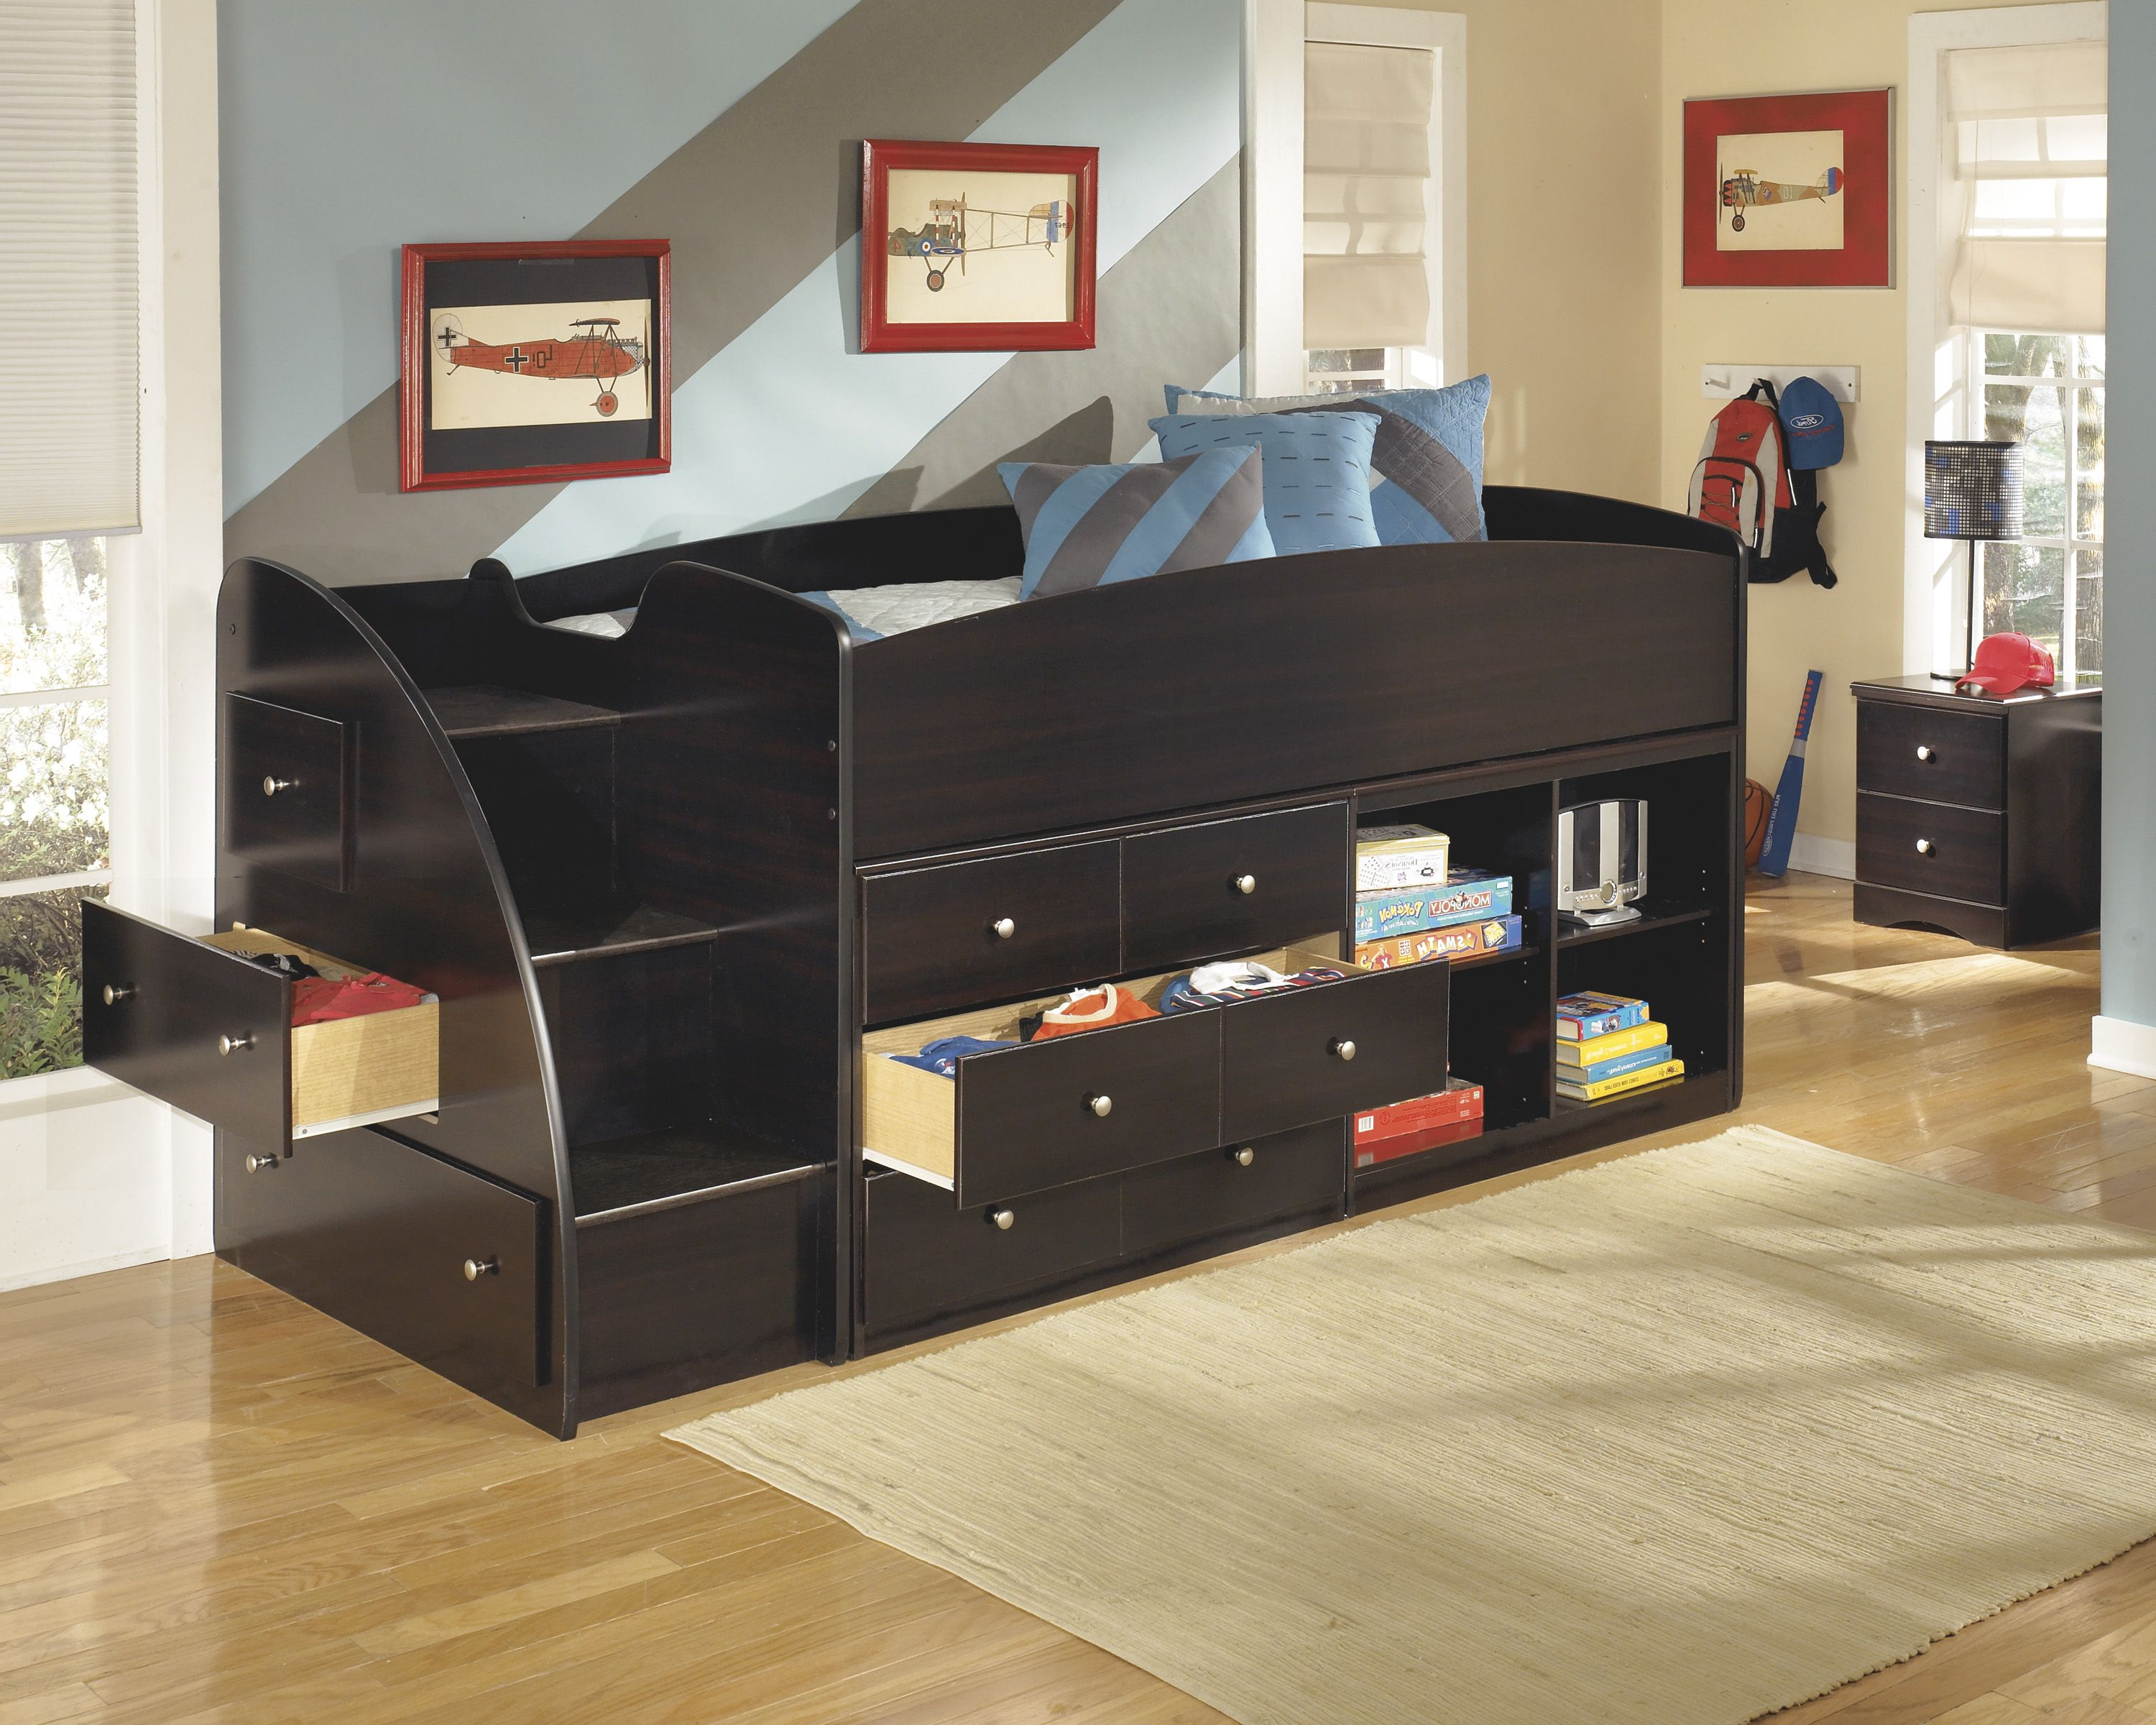 Boys' twin loft bed with storage steps  The dark finish and simplified contemporary design of the